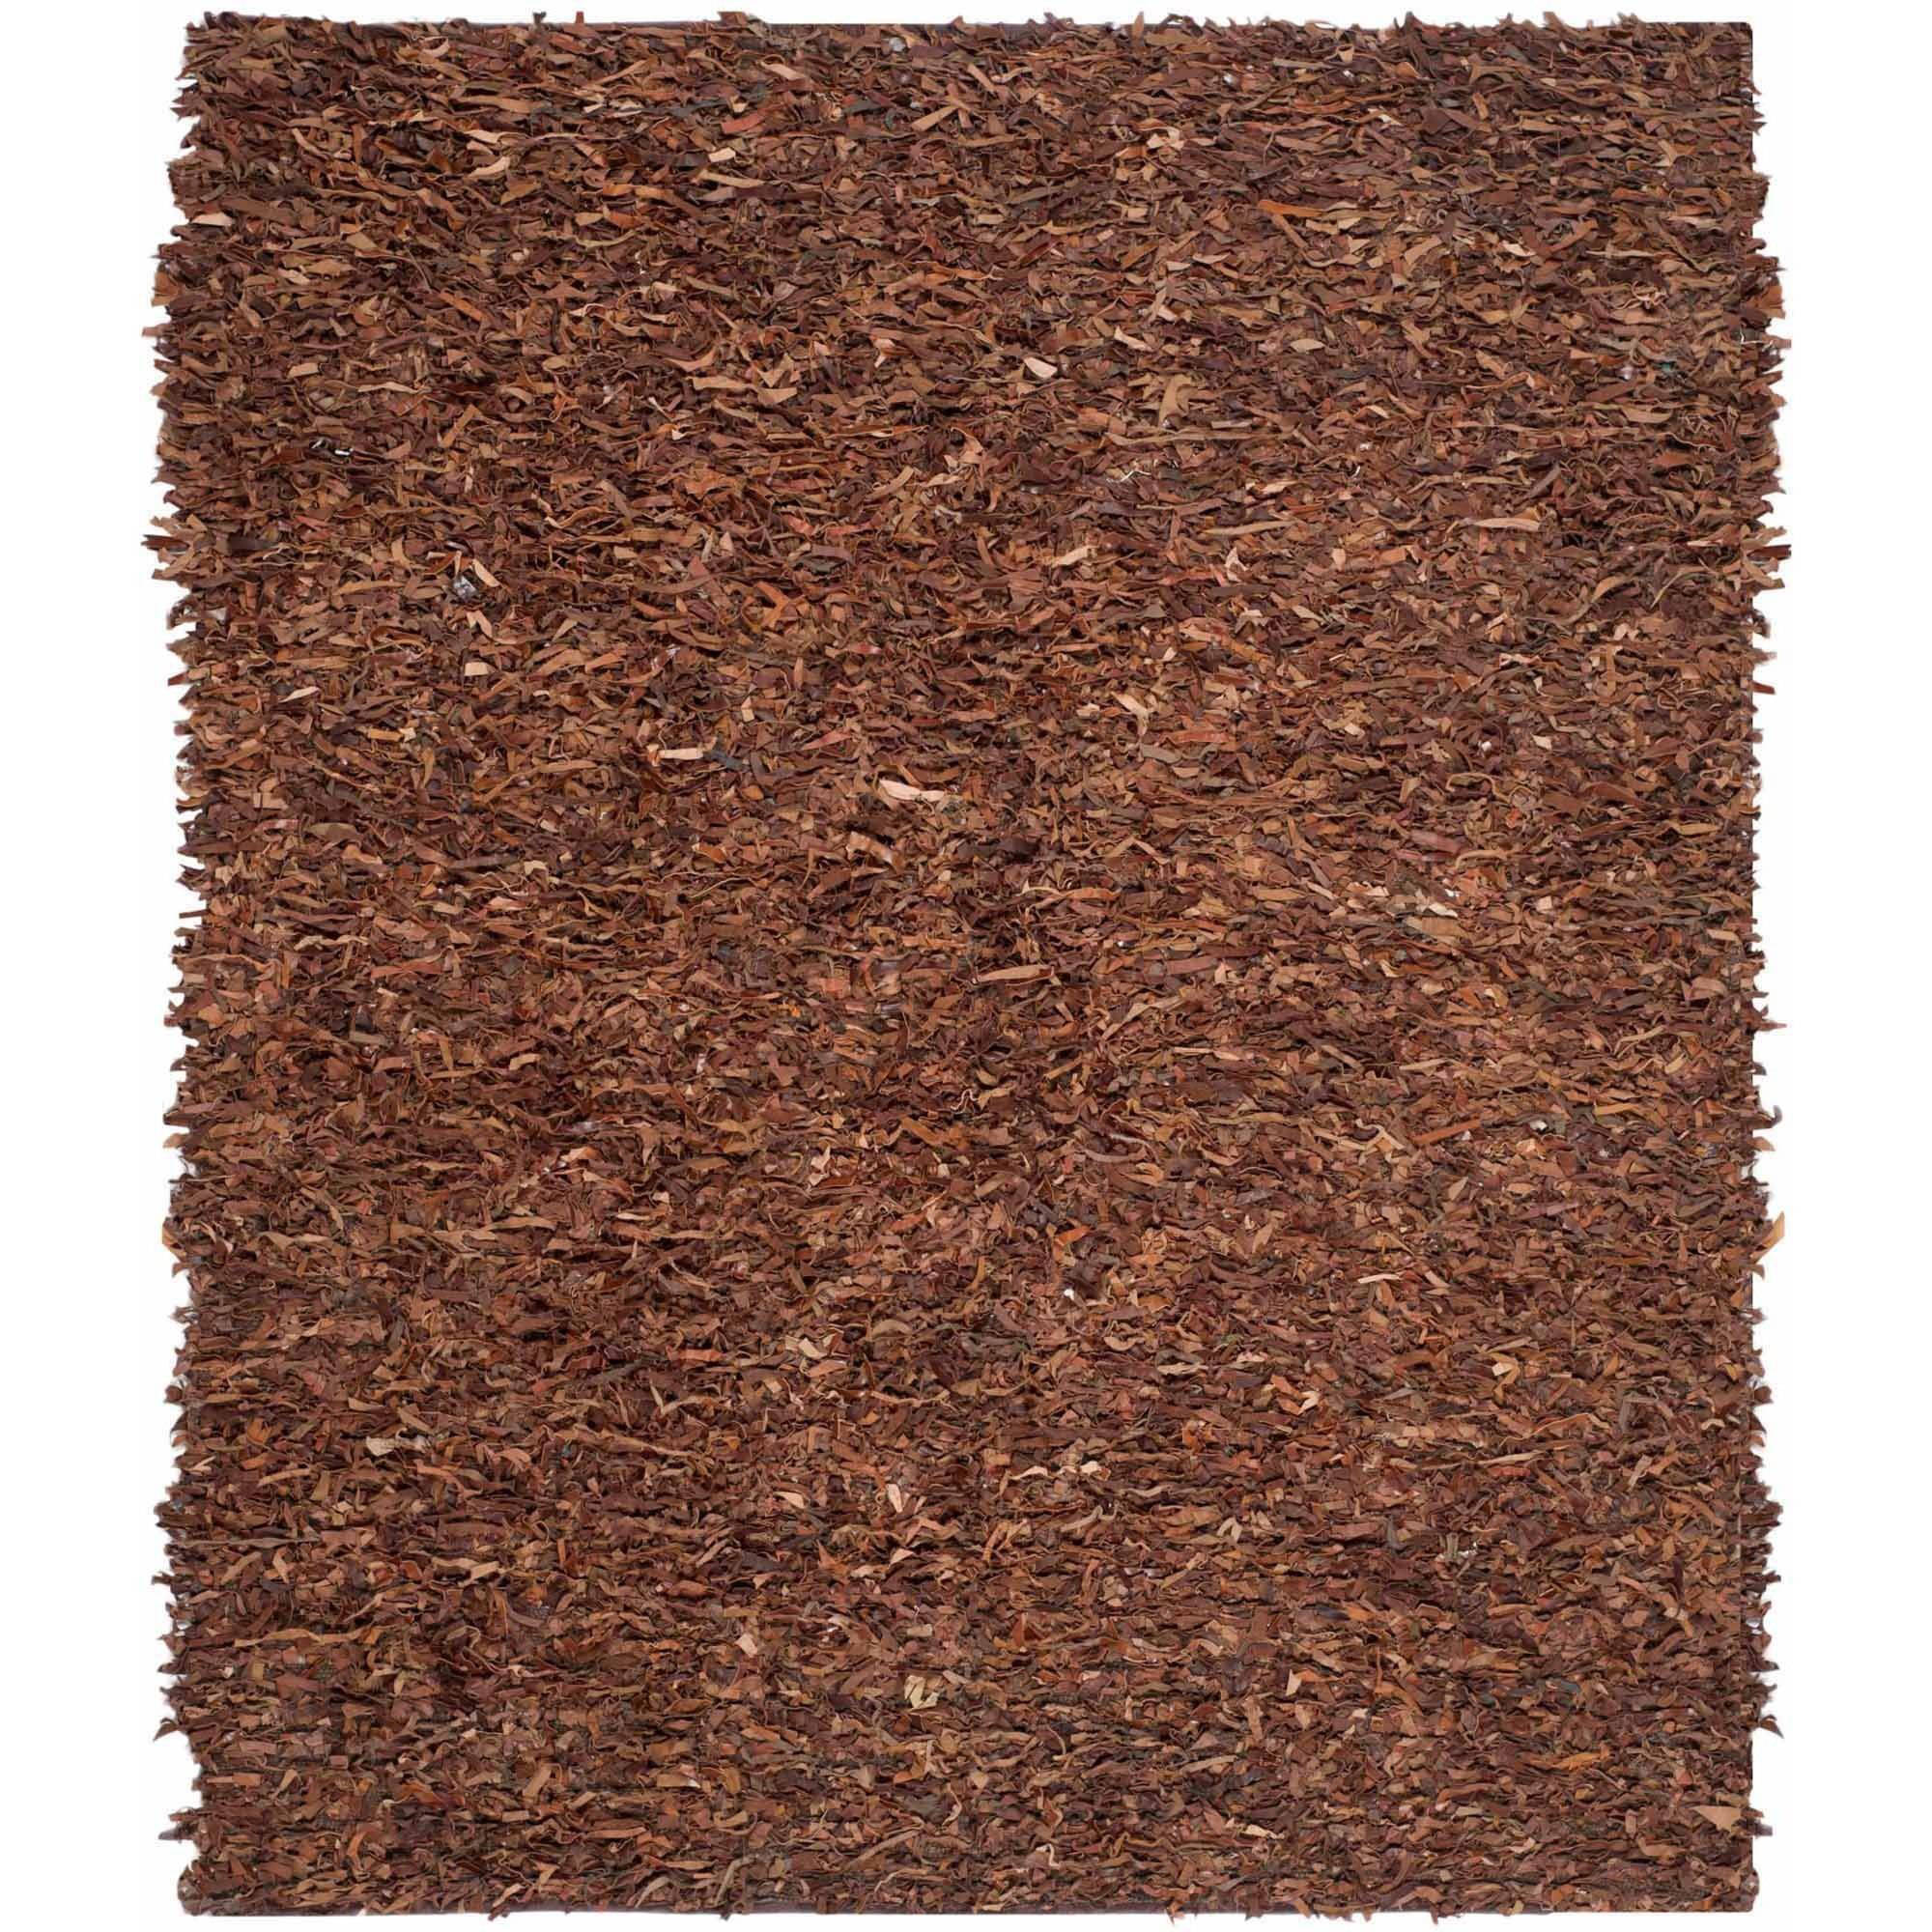 Brown Shag Area Rugs safavieh mariam hand knotted leather shag area rug or runner